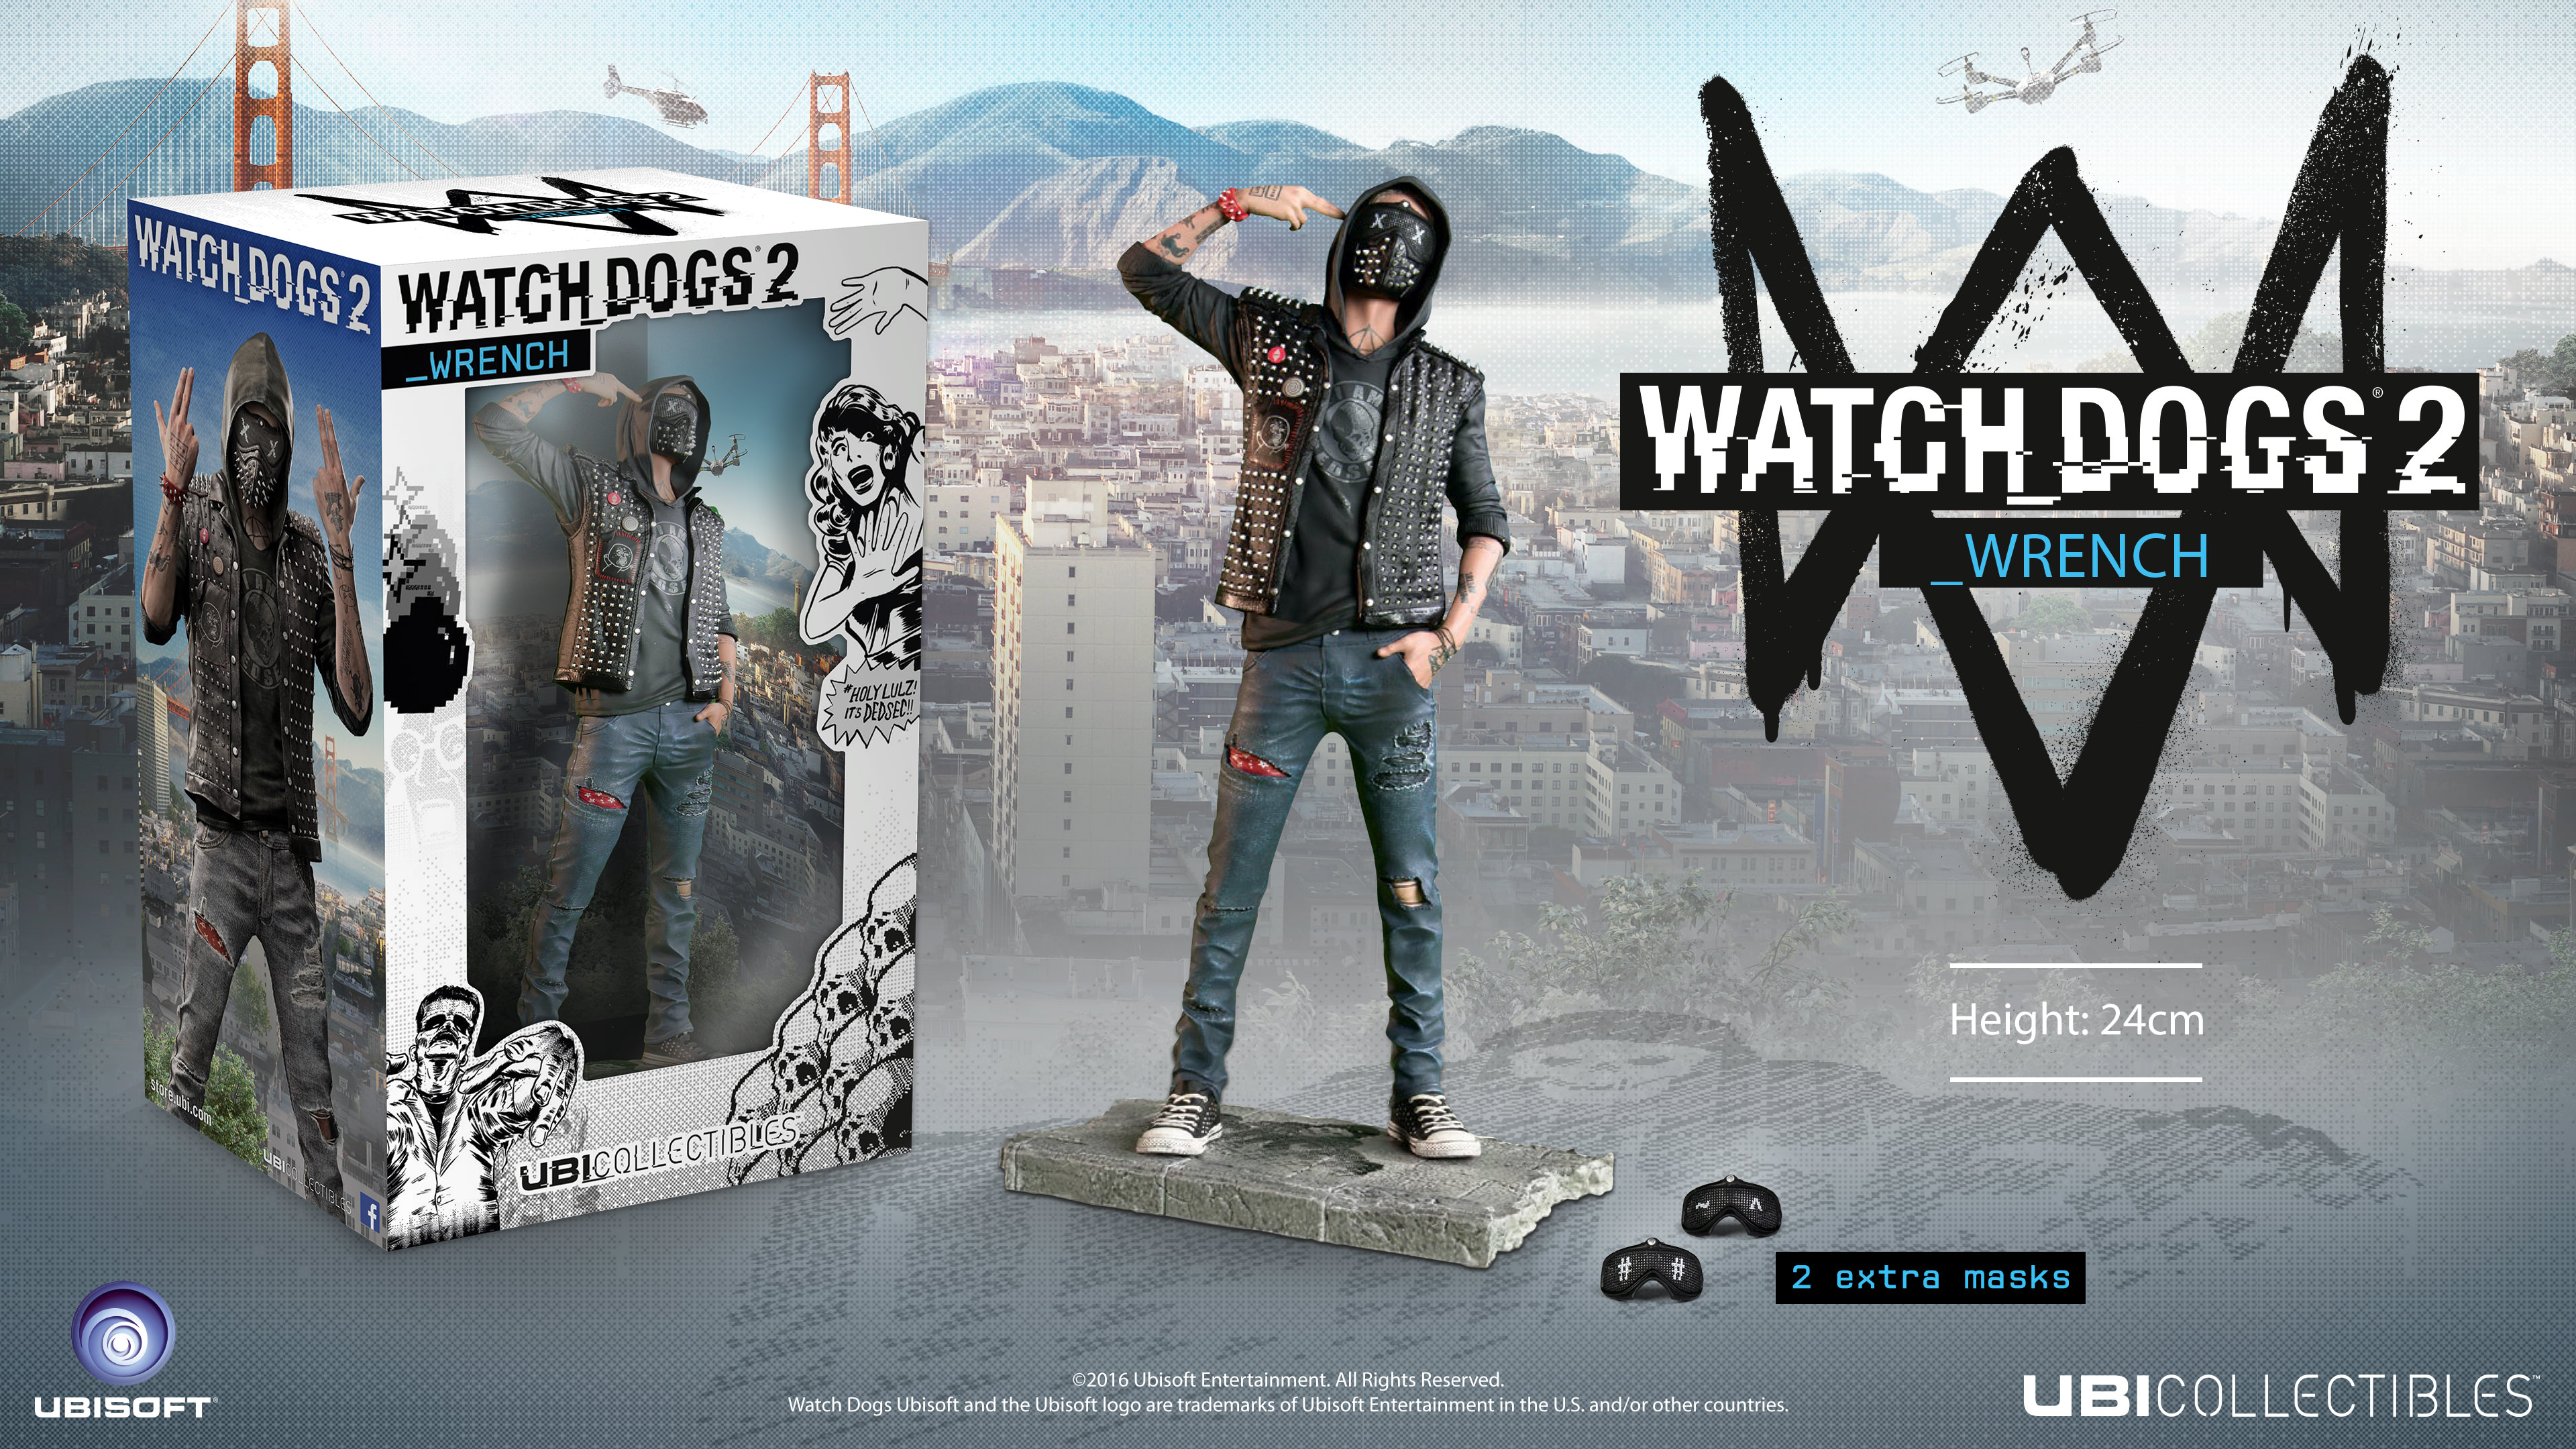 Watch Dogs 2 Official Playstation Store Pre Order: Watch_Dogs 2 Figurine: The Wrench